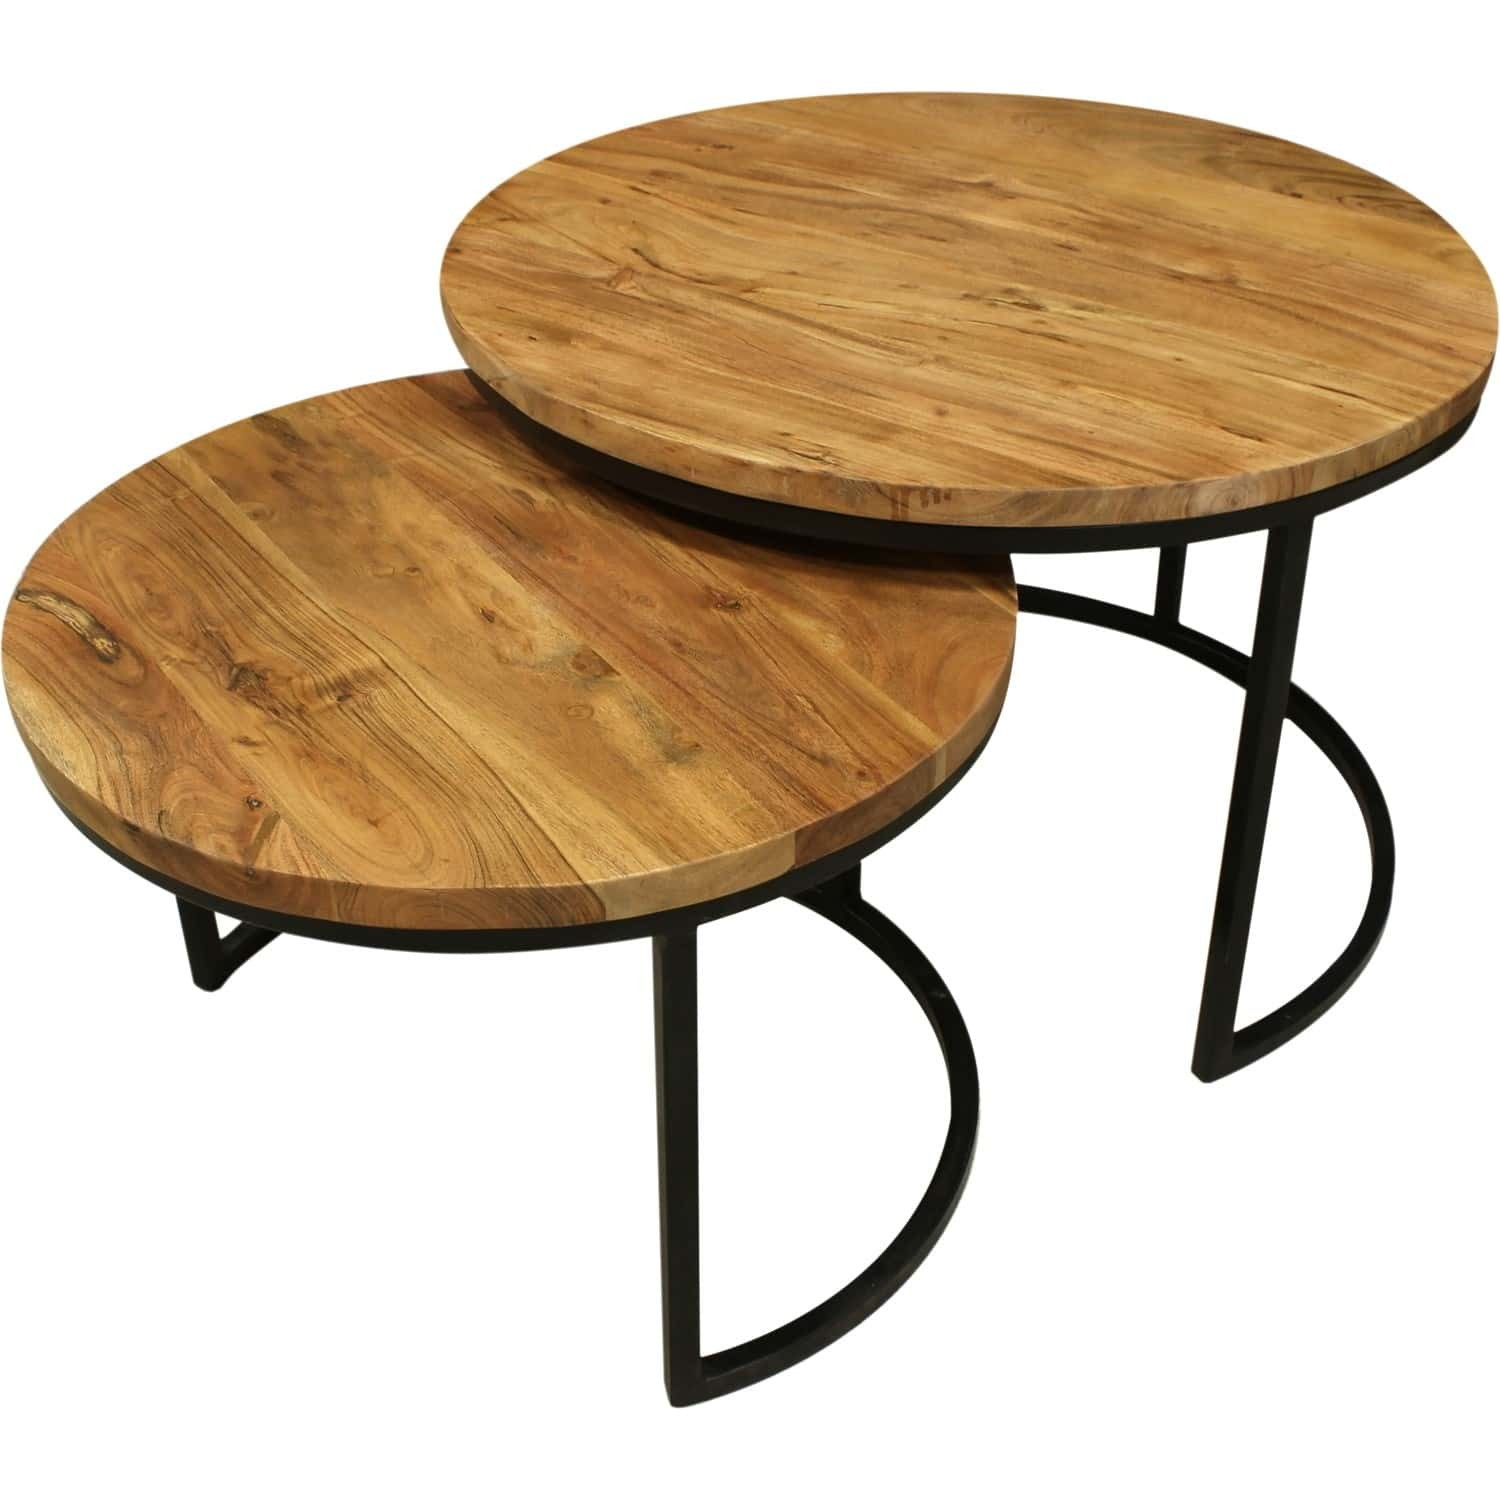 Tables basses gigognes bois et metal for Table basse metal et bois